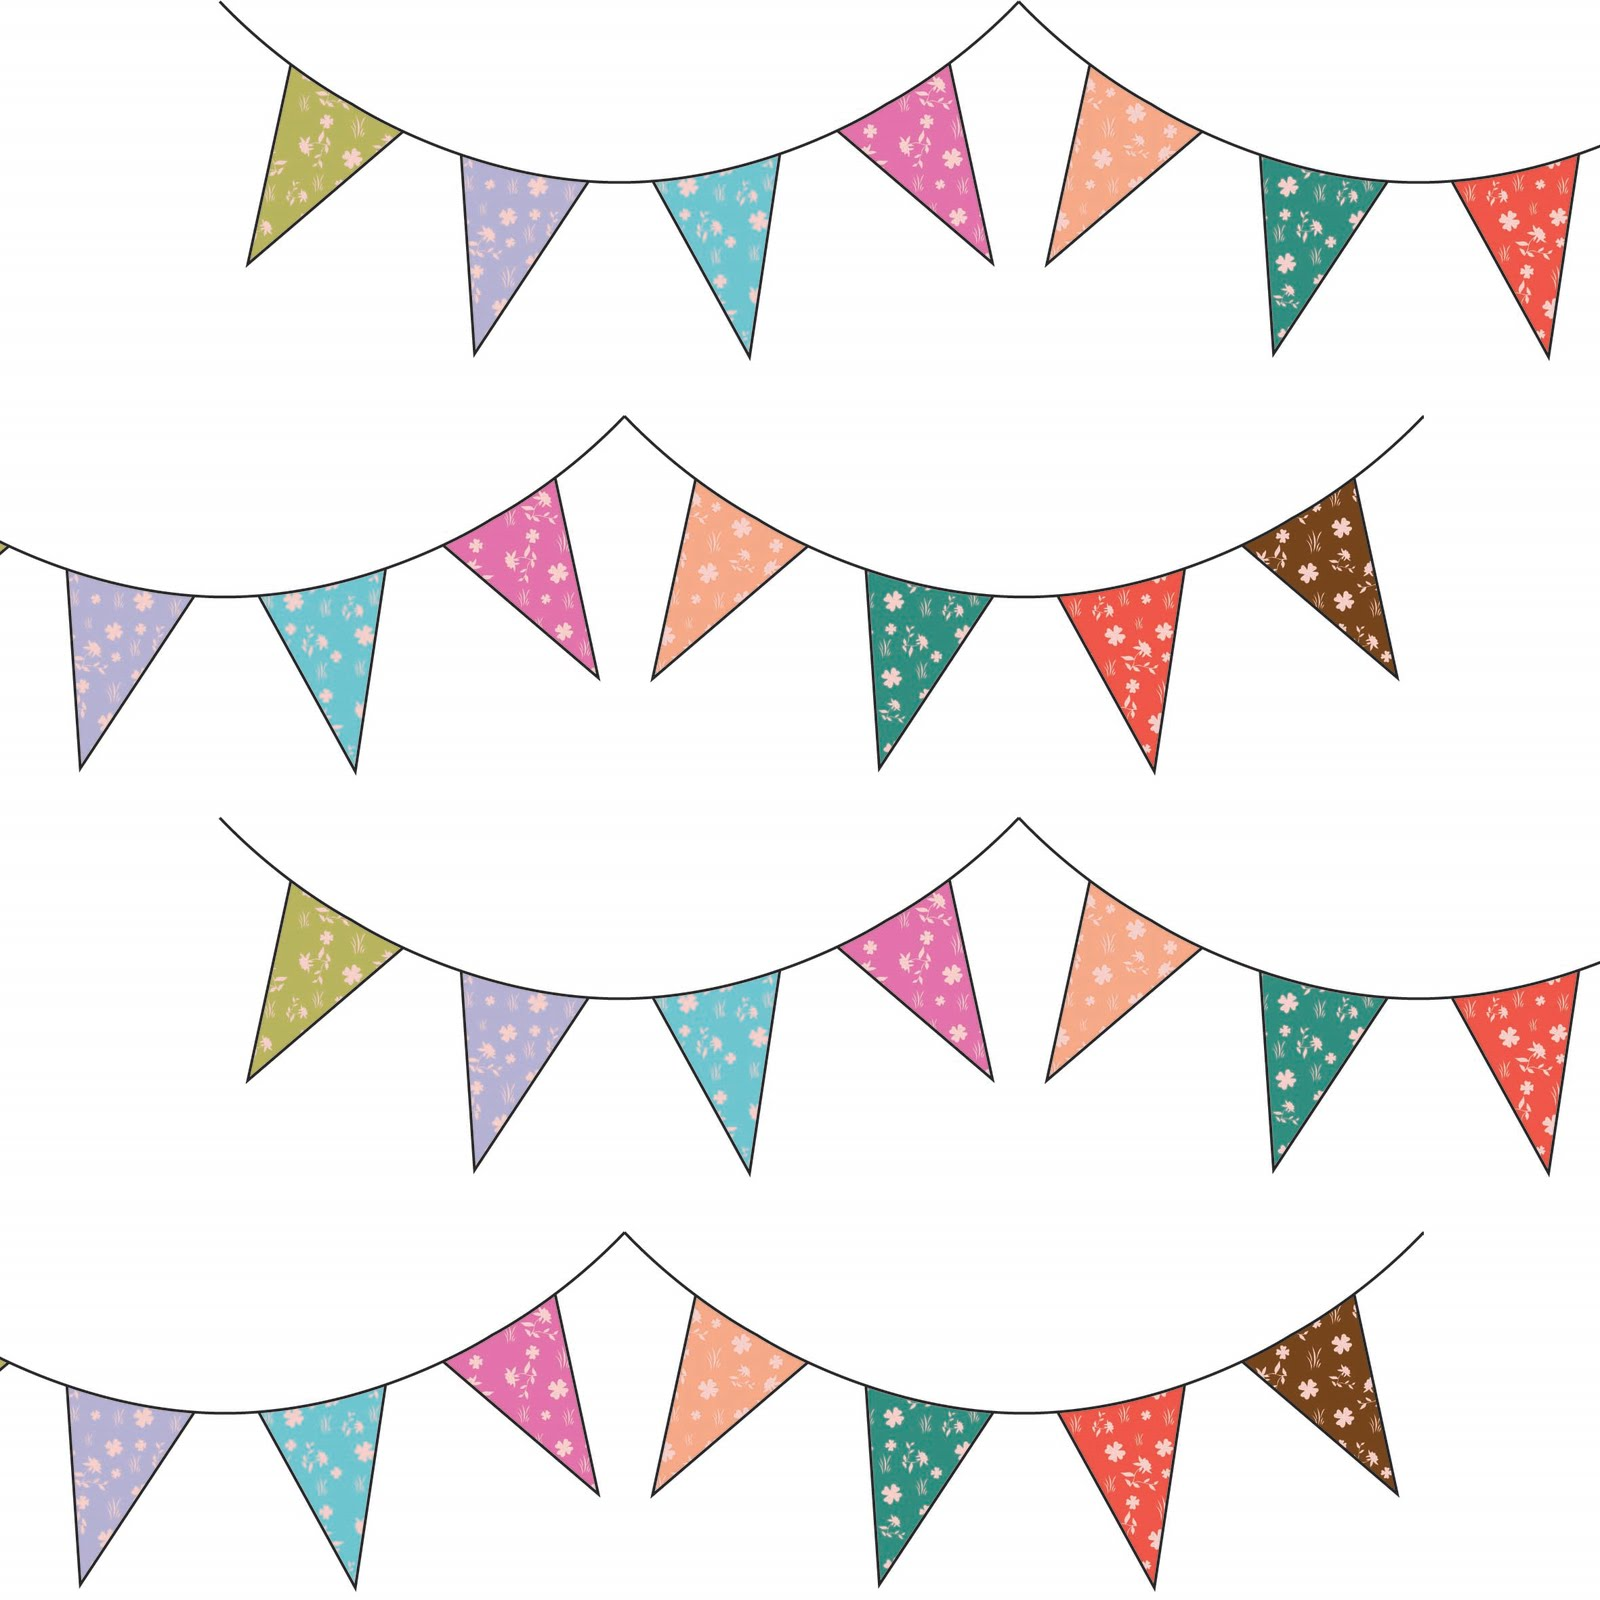 Drawn bunting Coote: A A Vintage Tea